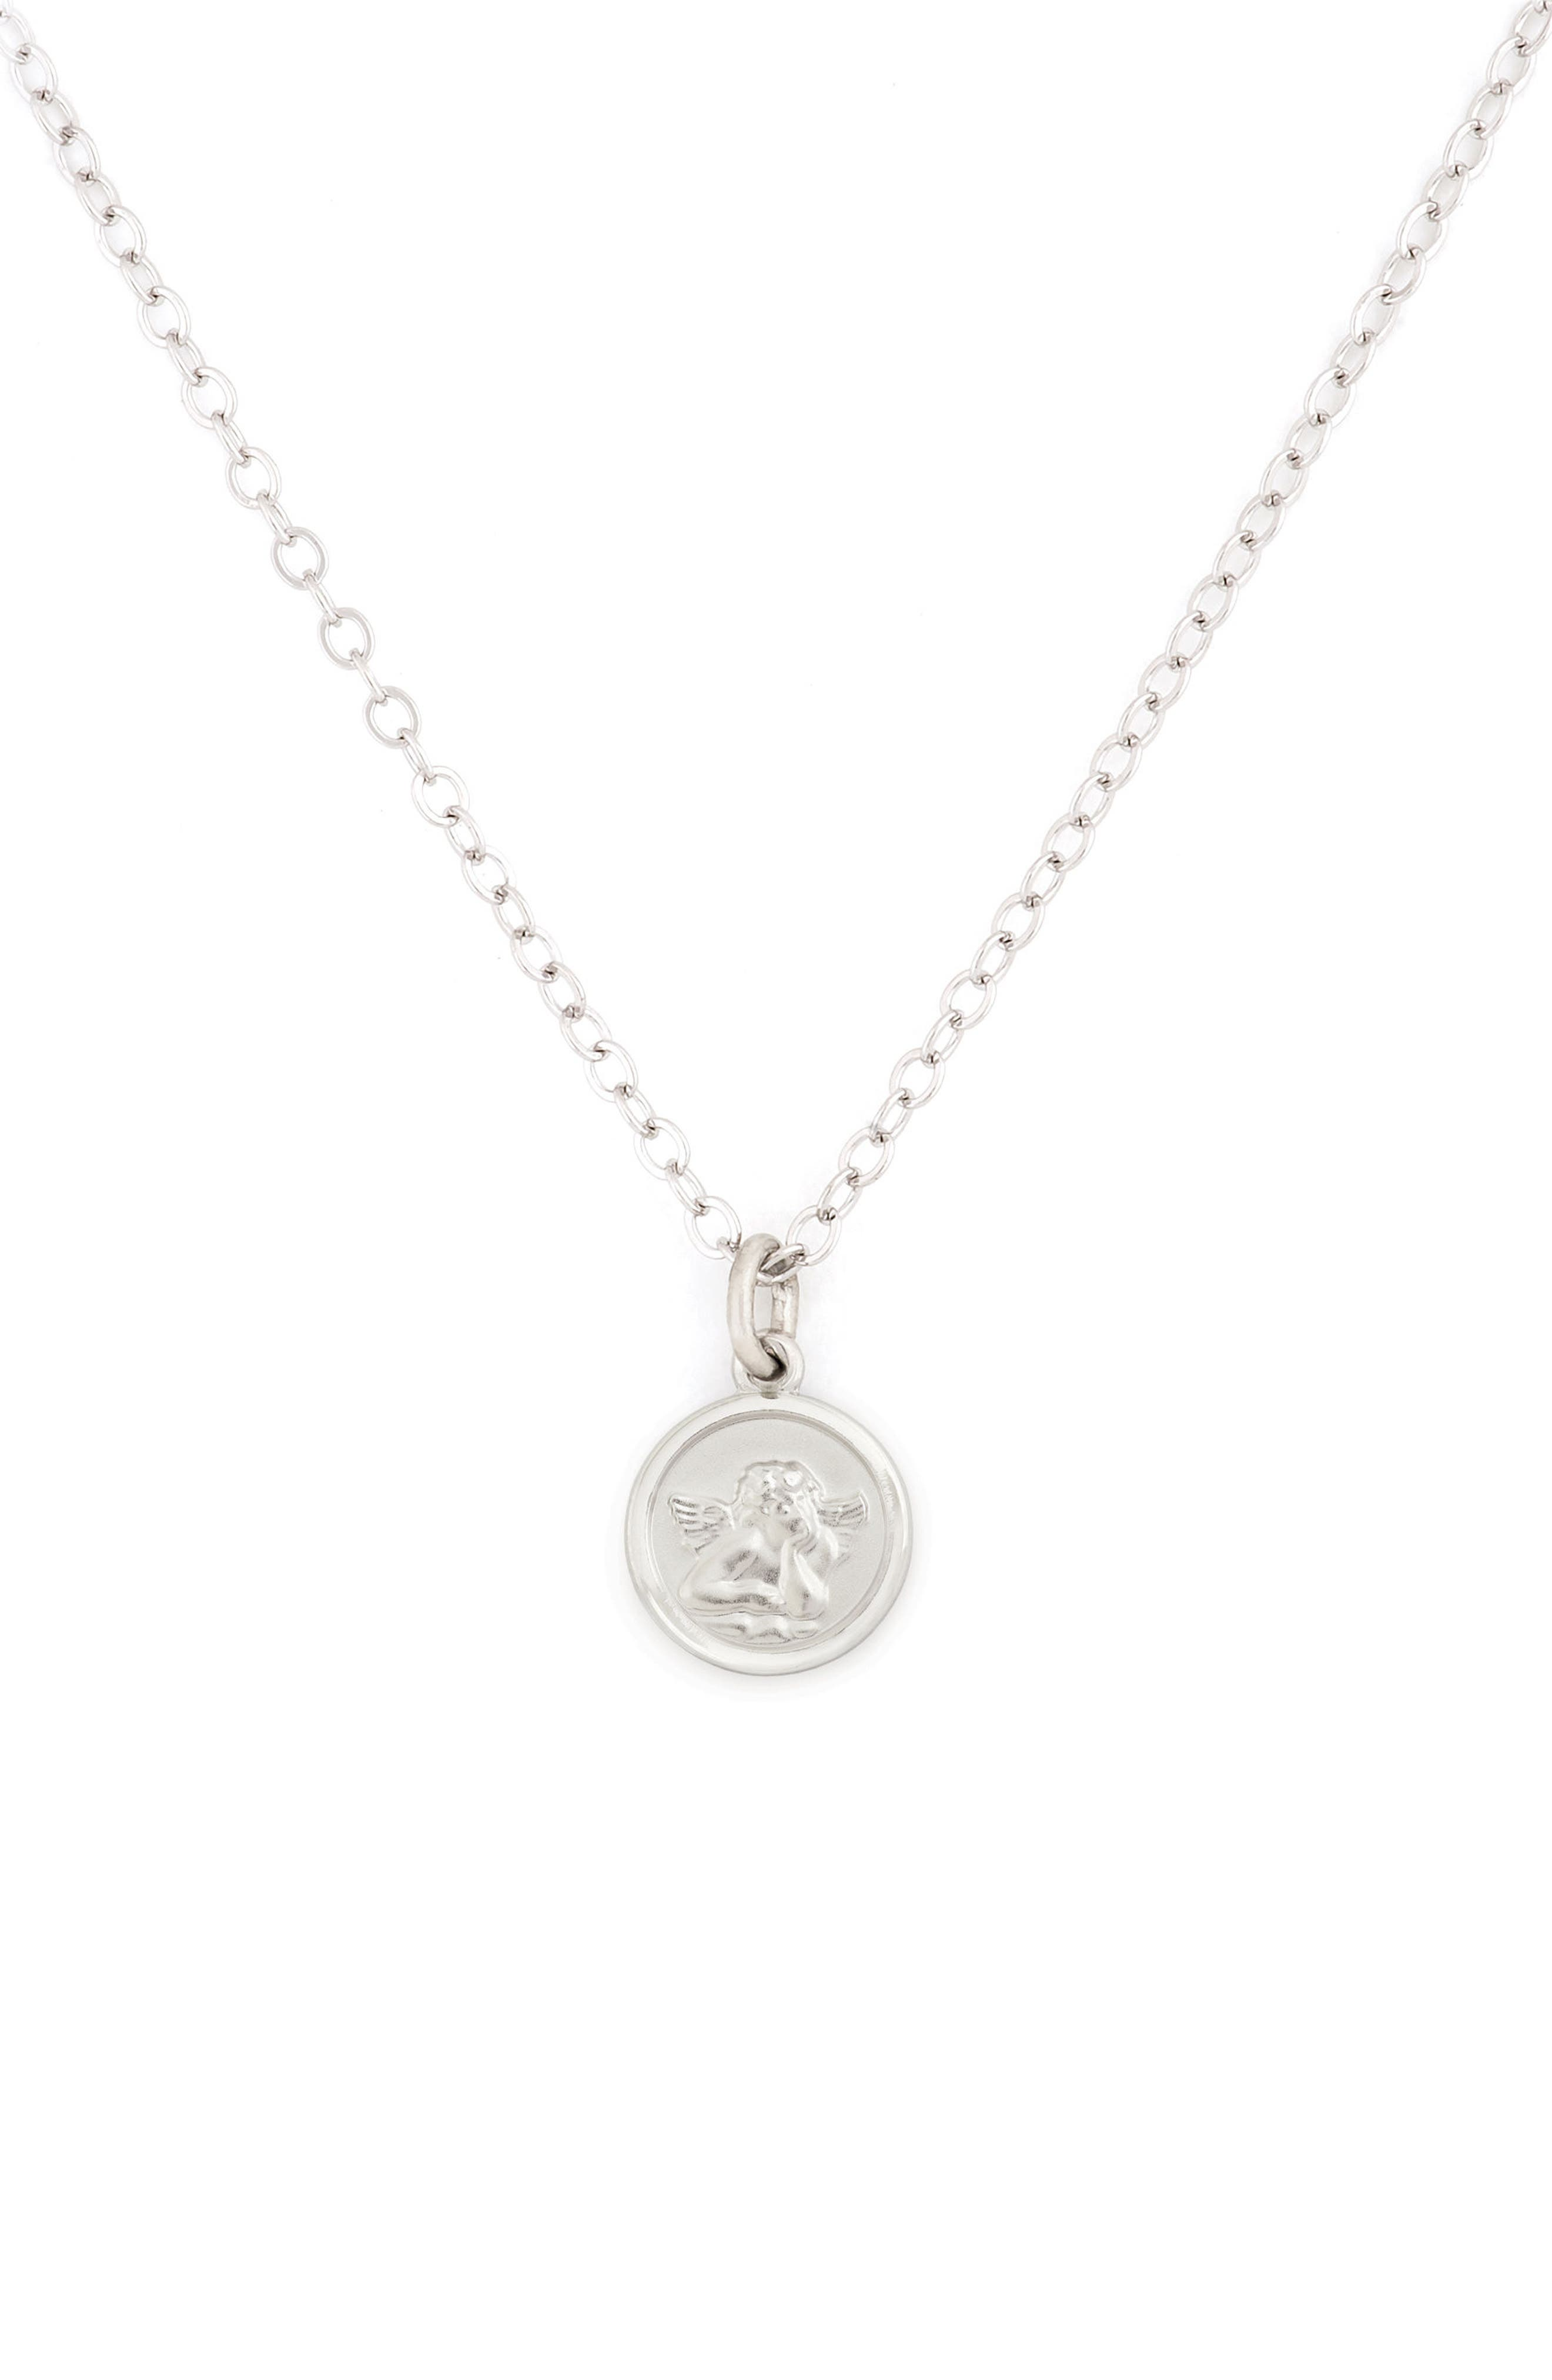 Cherub Medal Sterling Silver Pendant Necklace,                             Main thumbnail 1, color,                             Silver